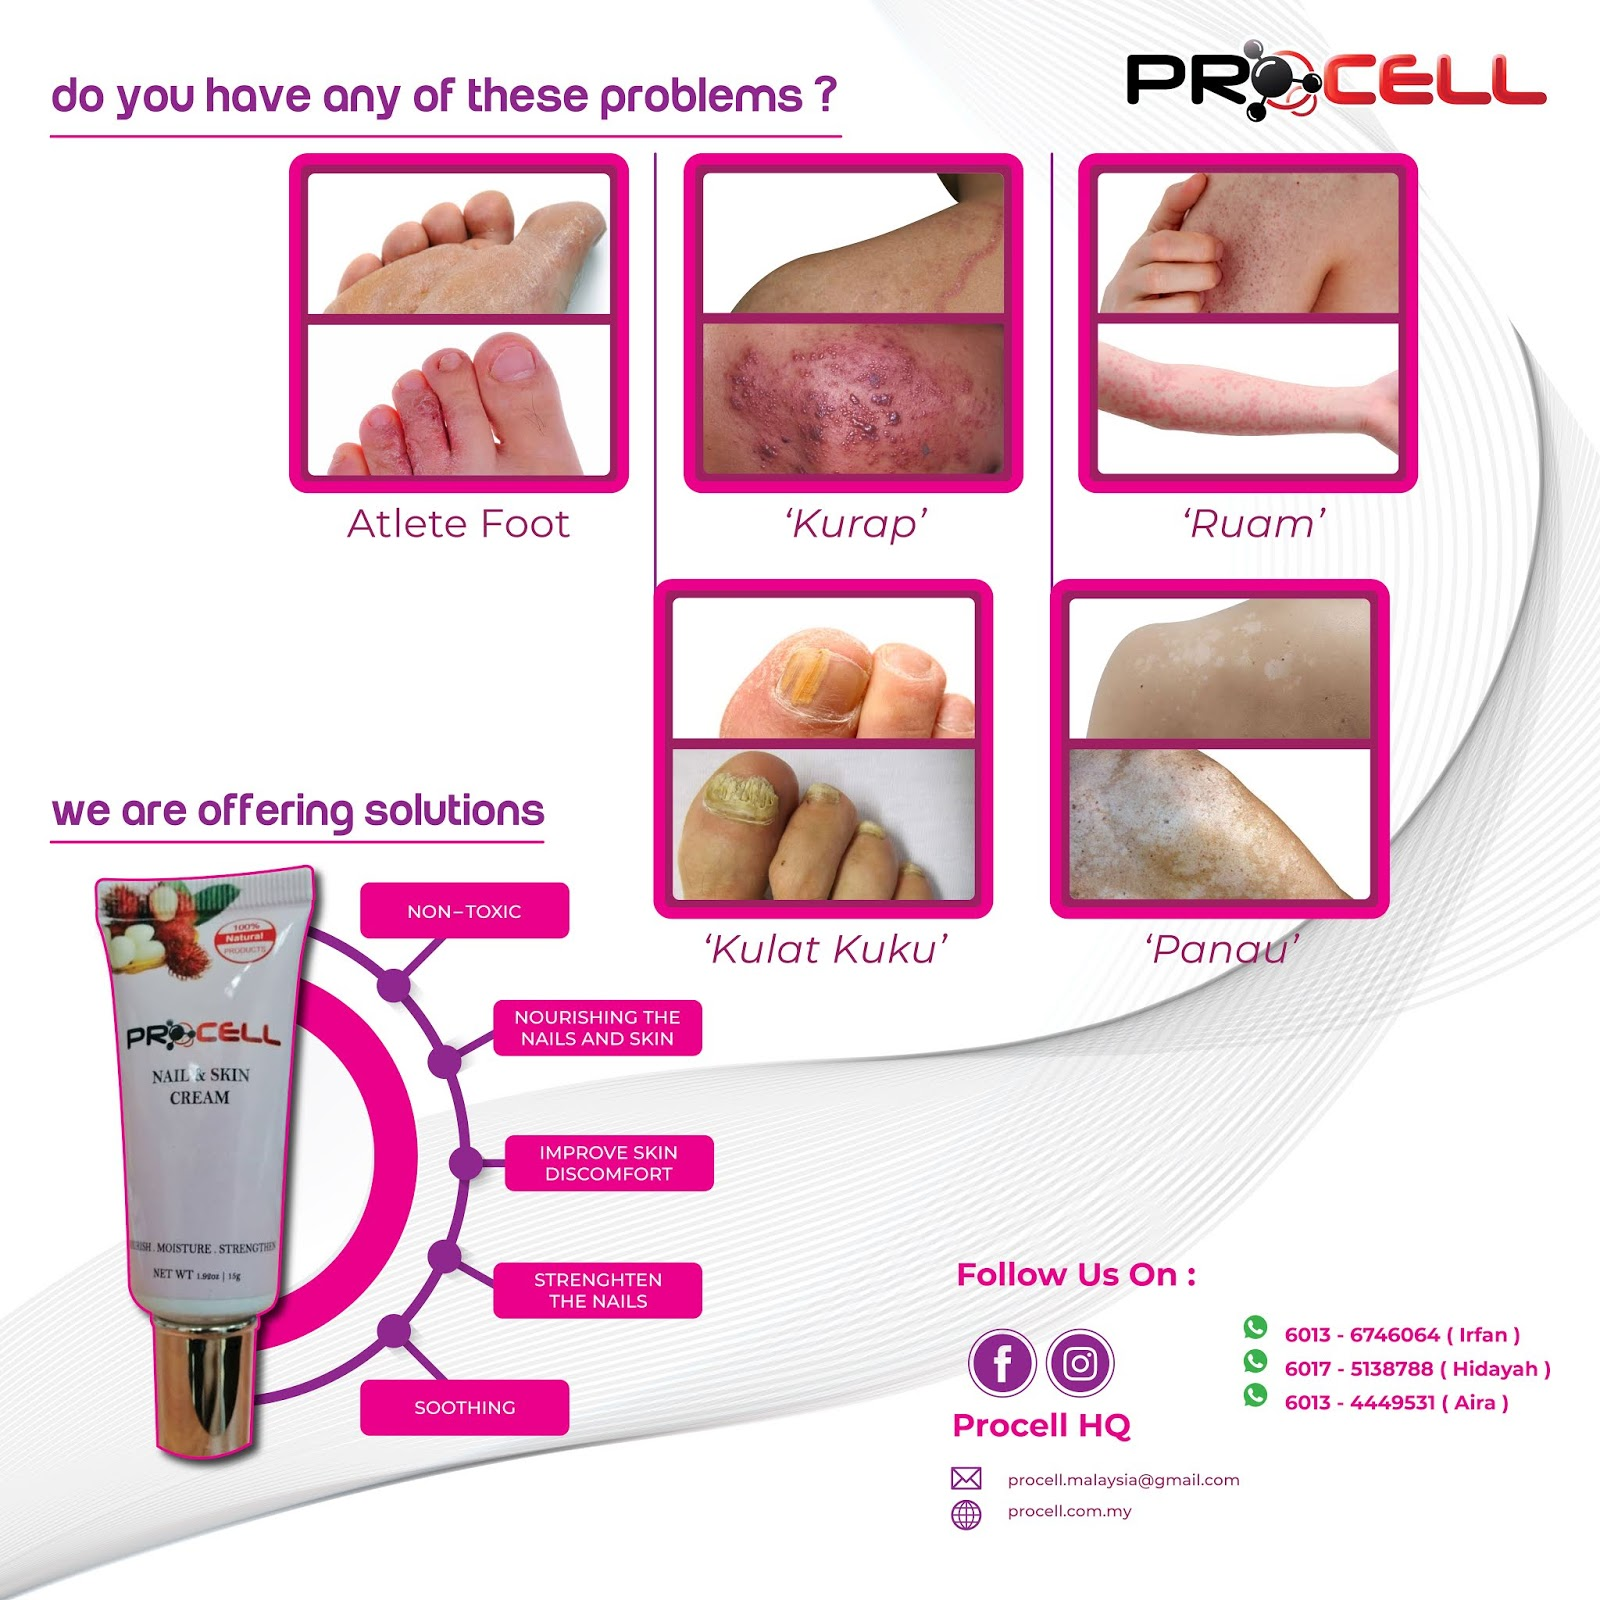 PROCELL Skin & Nail Cream